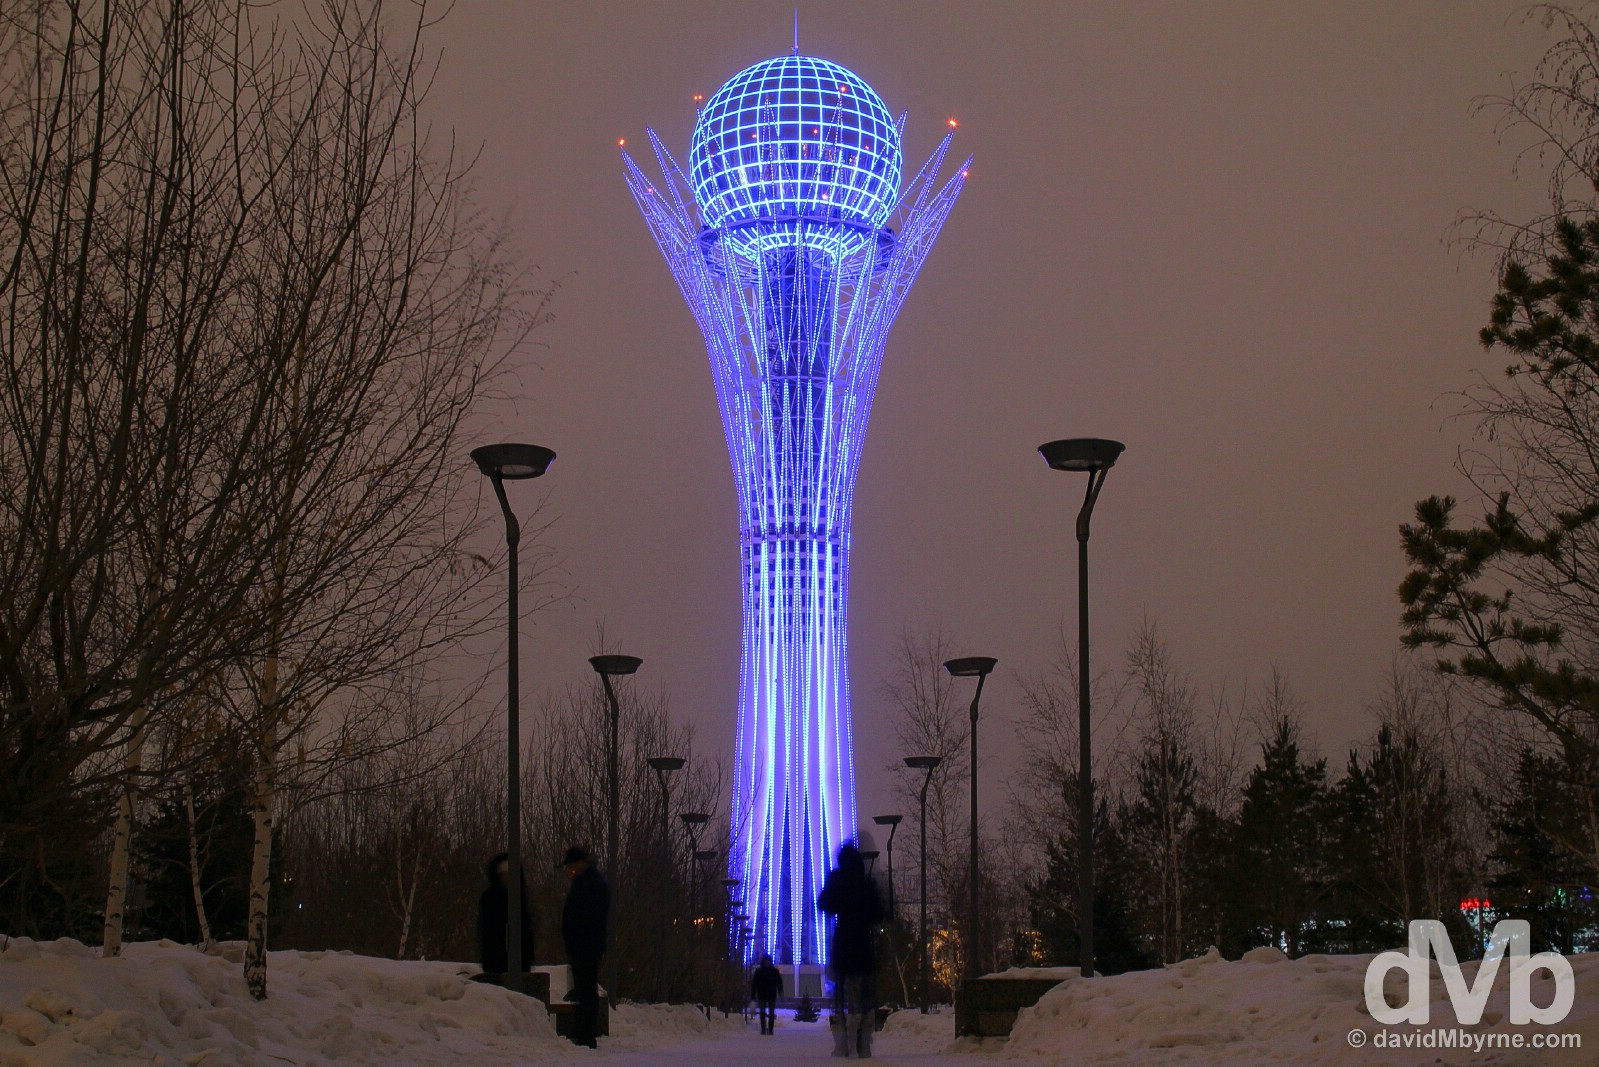 A nighttime view of the Bayterek Monument in Astana, Kazakhstan. February 16, 2015.